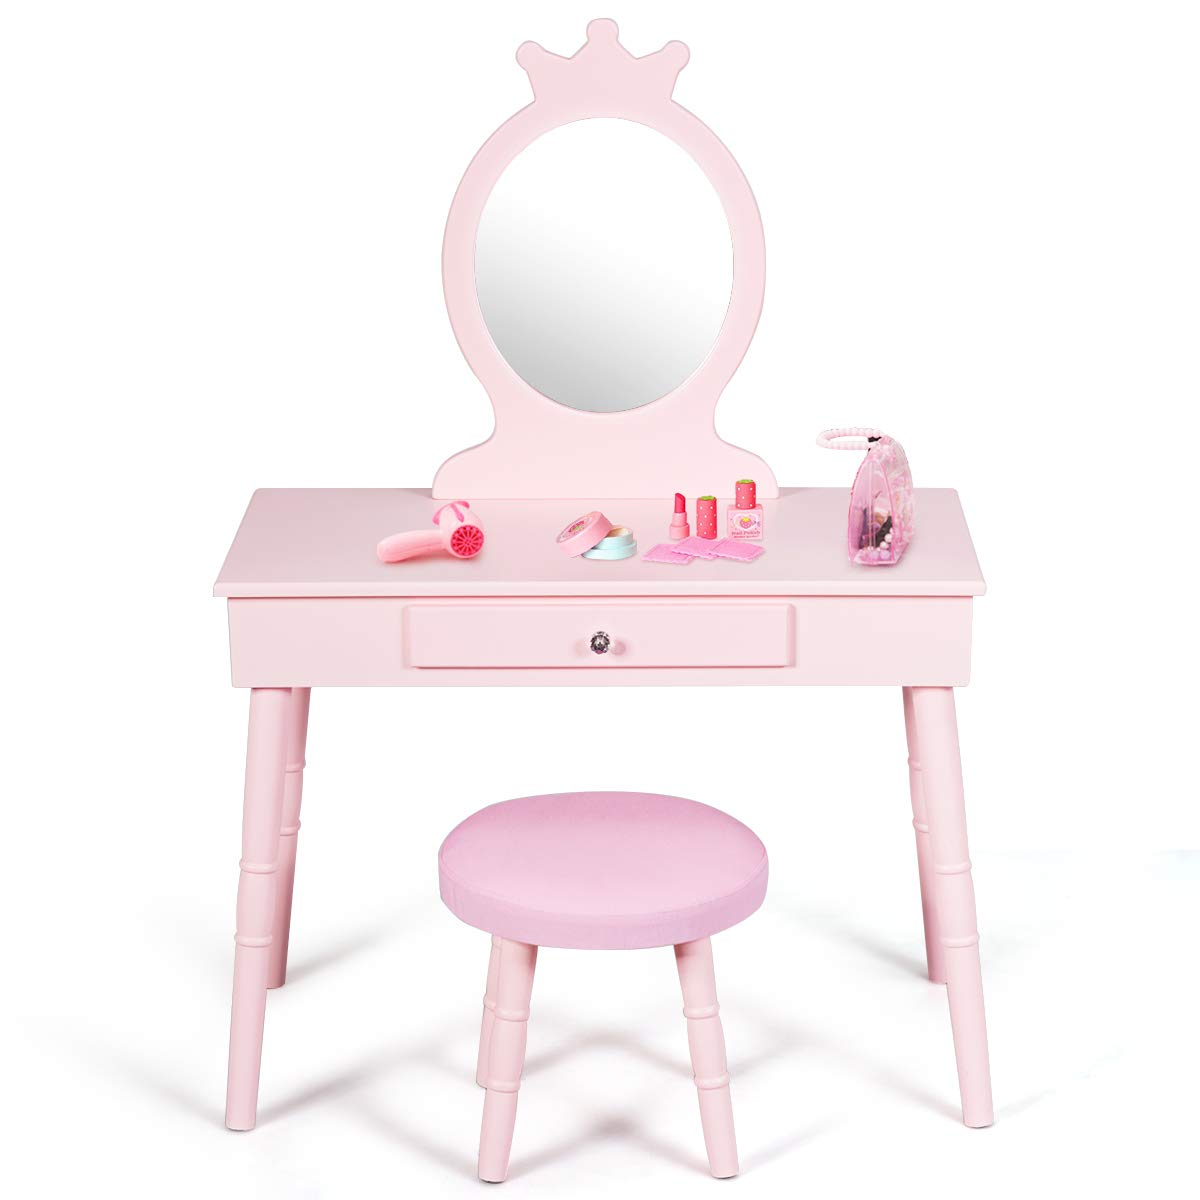 Costzon Kids Vanity Set, Wooden Princess Makeup Table with Cushioned Stool, Large Drawer and Crown Mirror, Pretend Beauty Make Up Dressing Play Set for Girls, Pink by Costzon